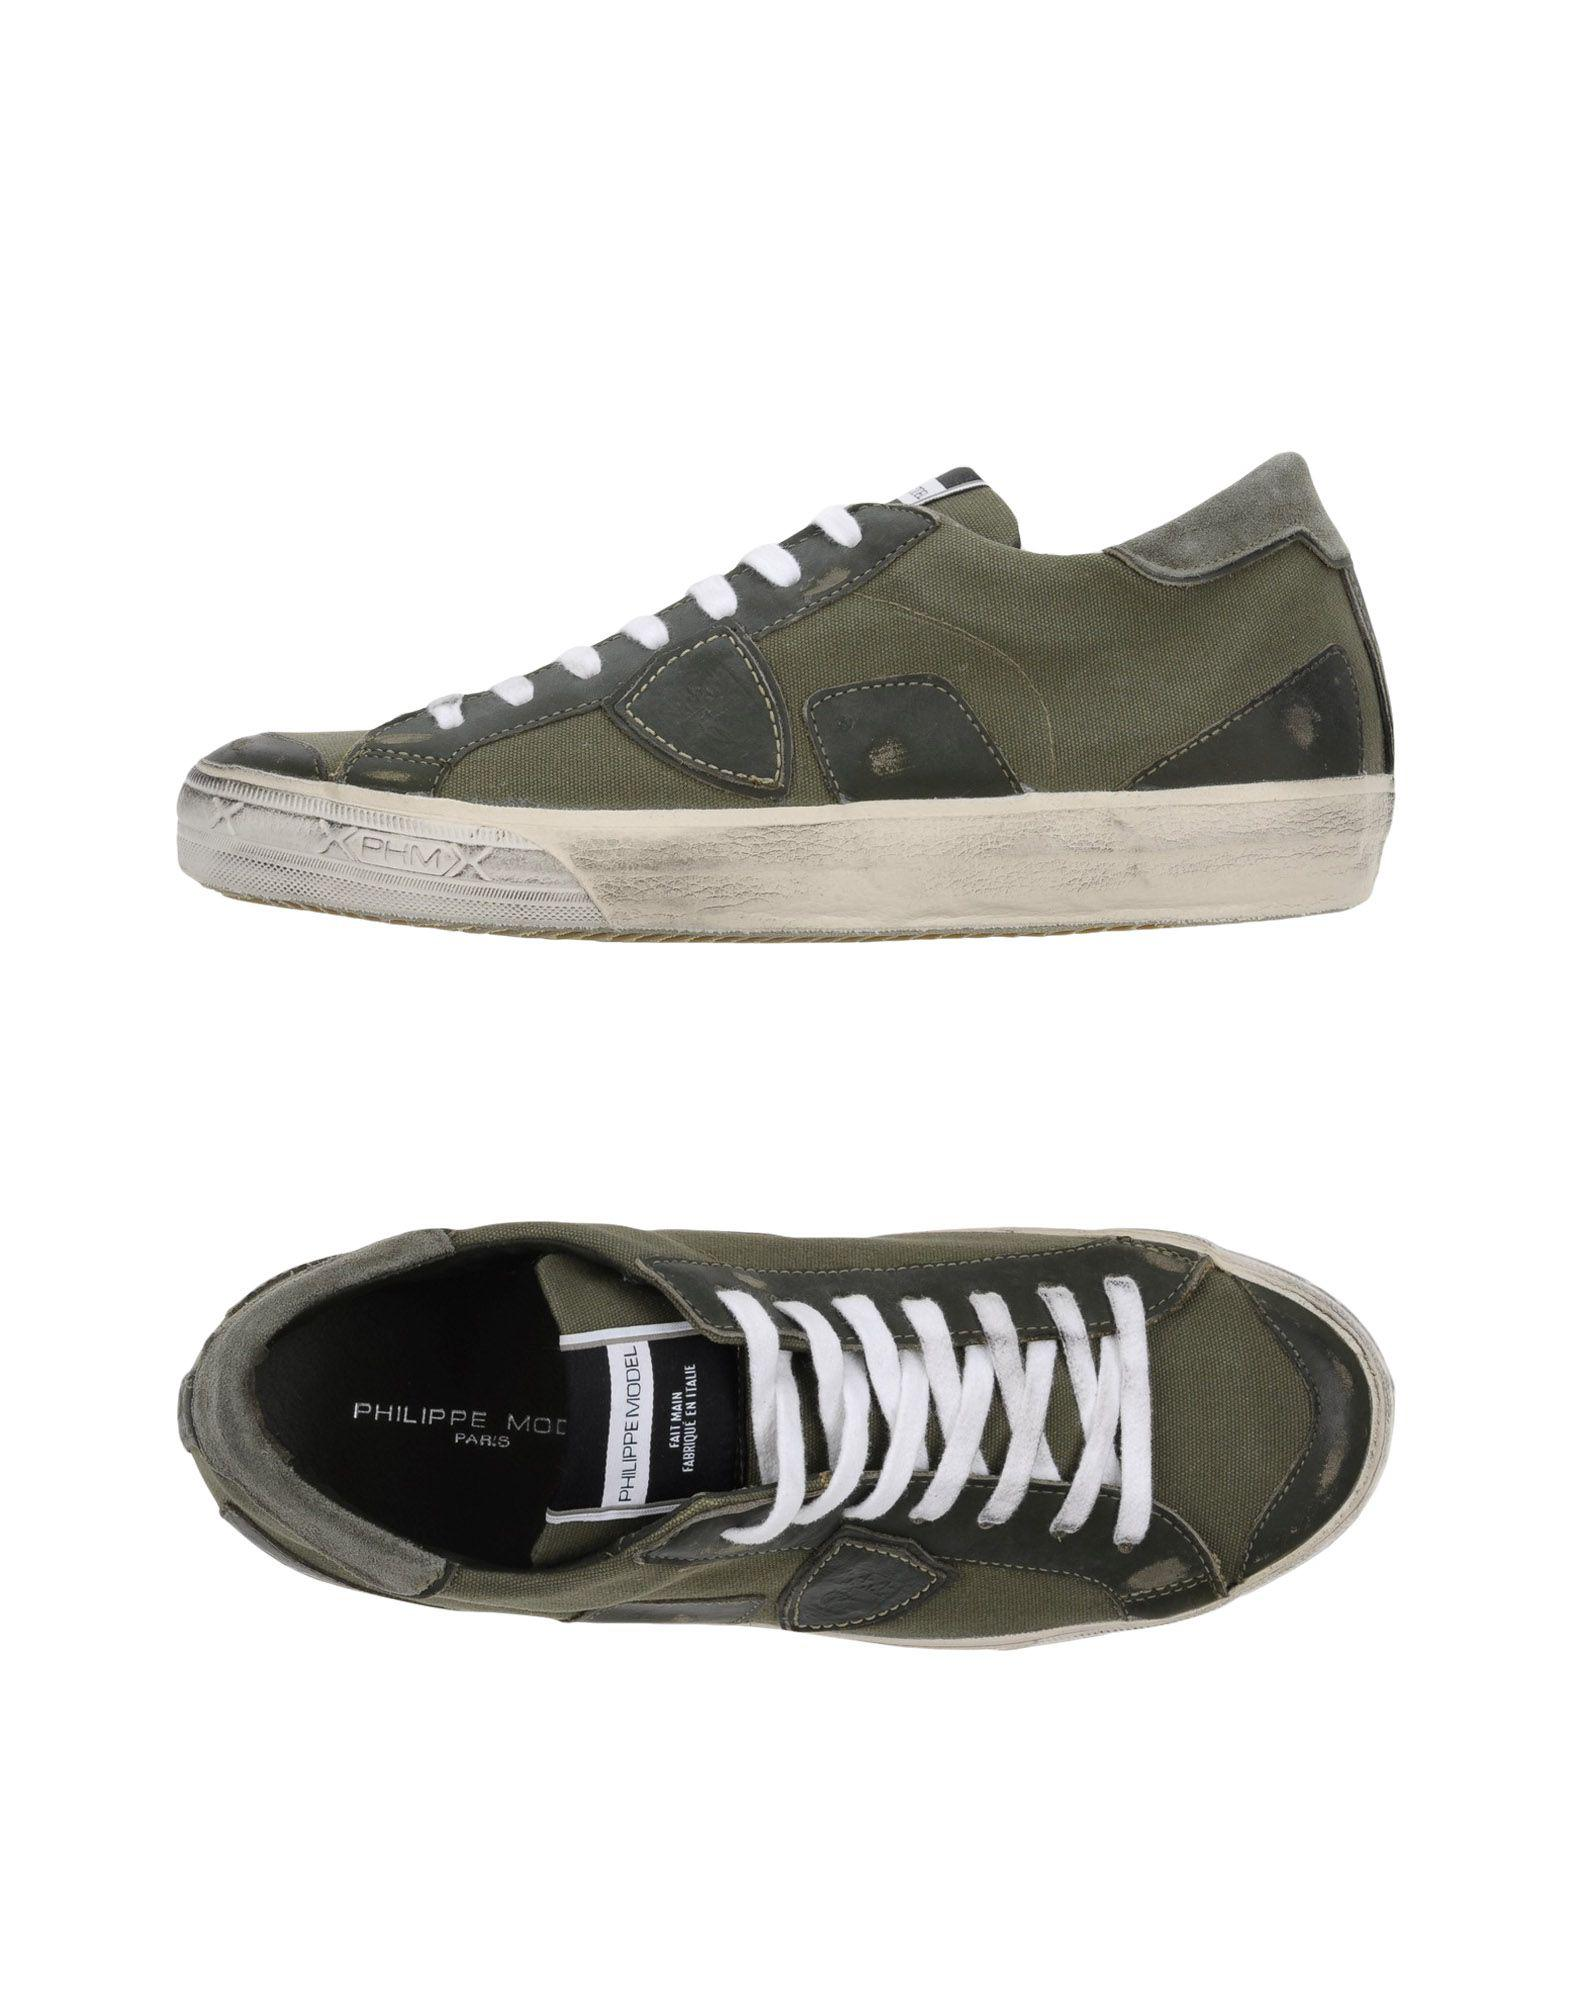 Outlet Huge Surprise Sexy Sport low-top sneakers - Green Philippe Model With Credit Card For Sale Cost Sale Online F6mcaXQoCA